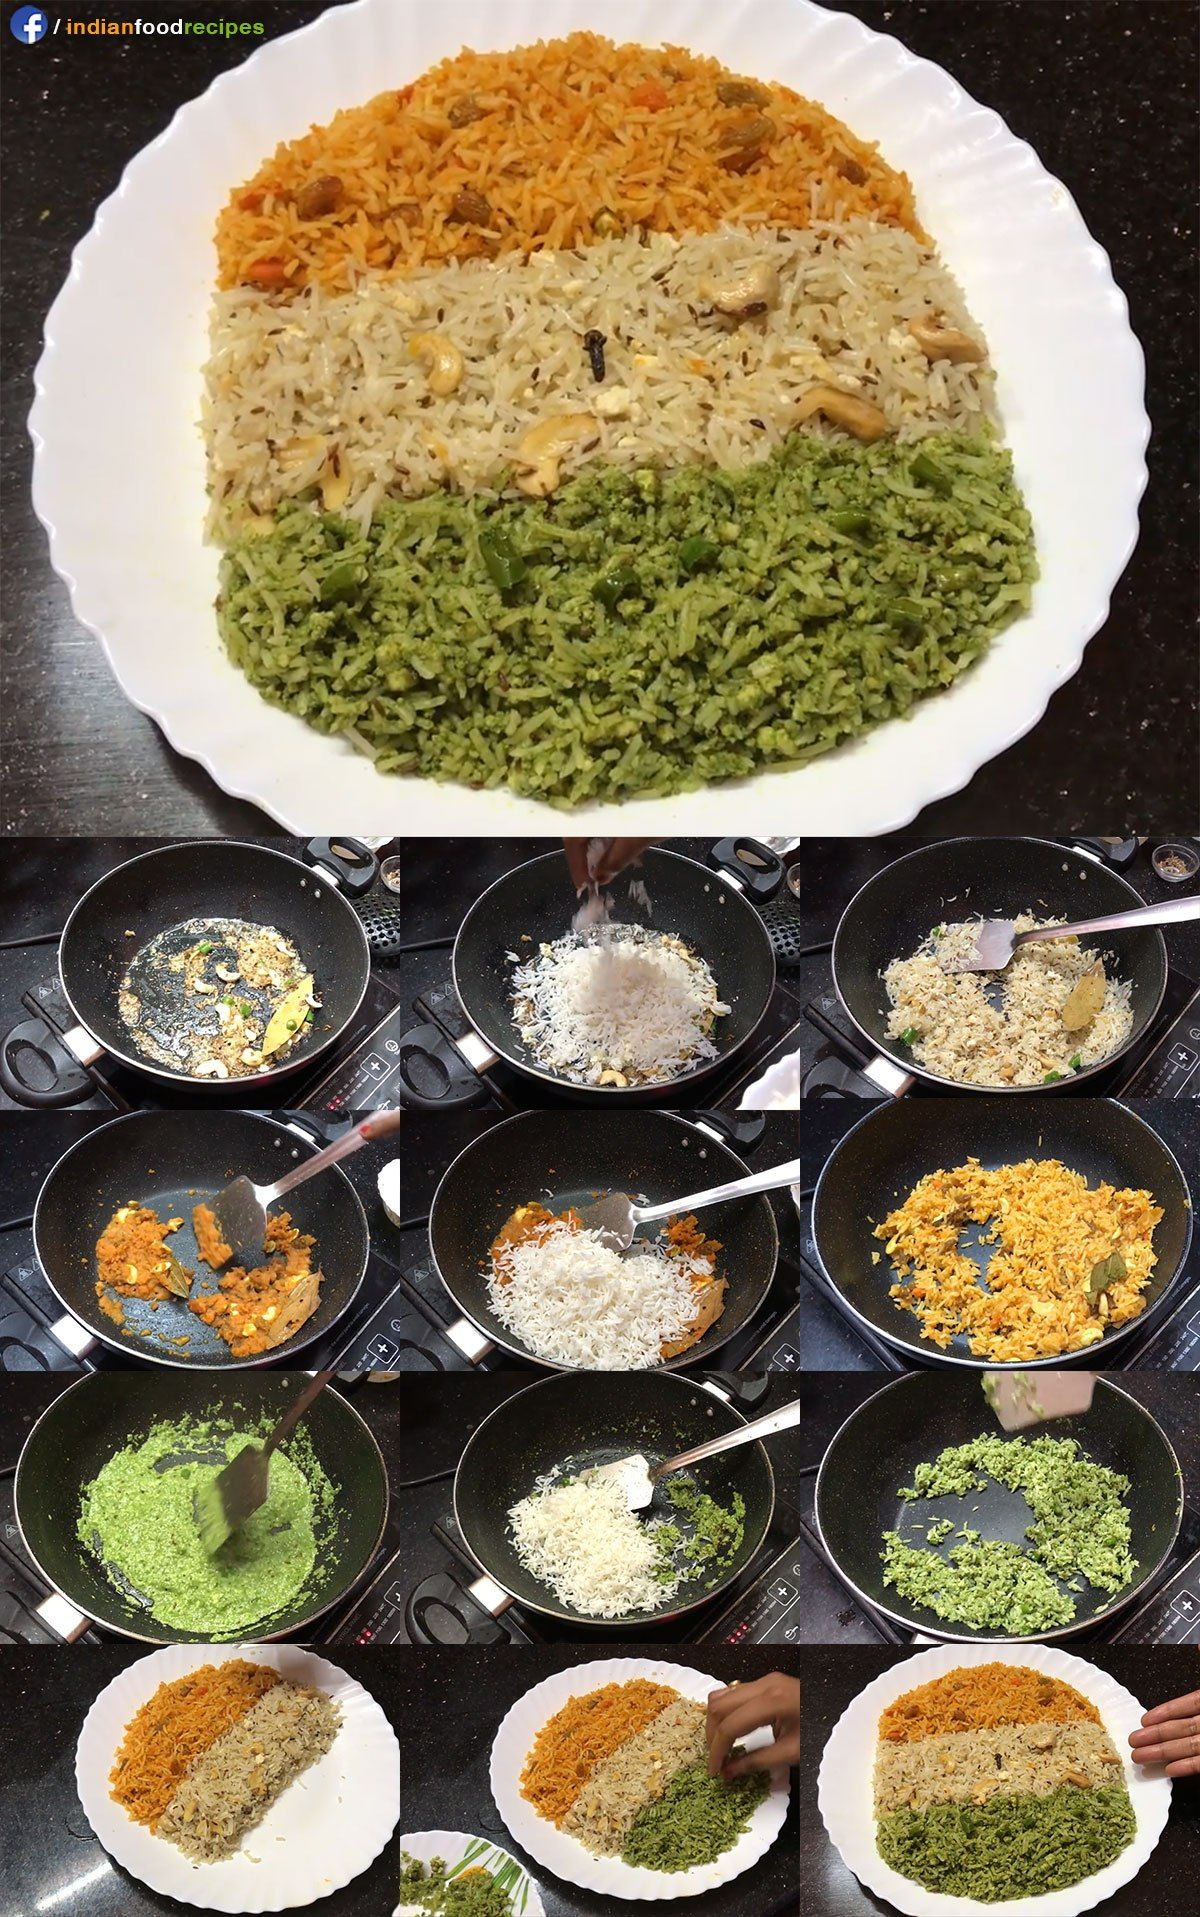 Tricolor pulao tiranga pulav recipe step by step all indian food tricolor pulao tiranga pulav recipe step by step forumfinder Image collections